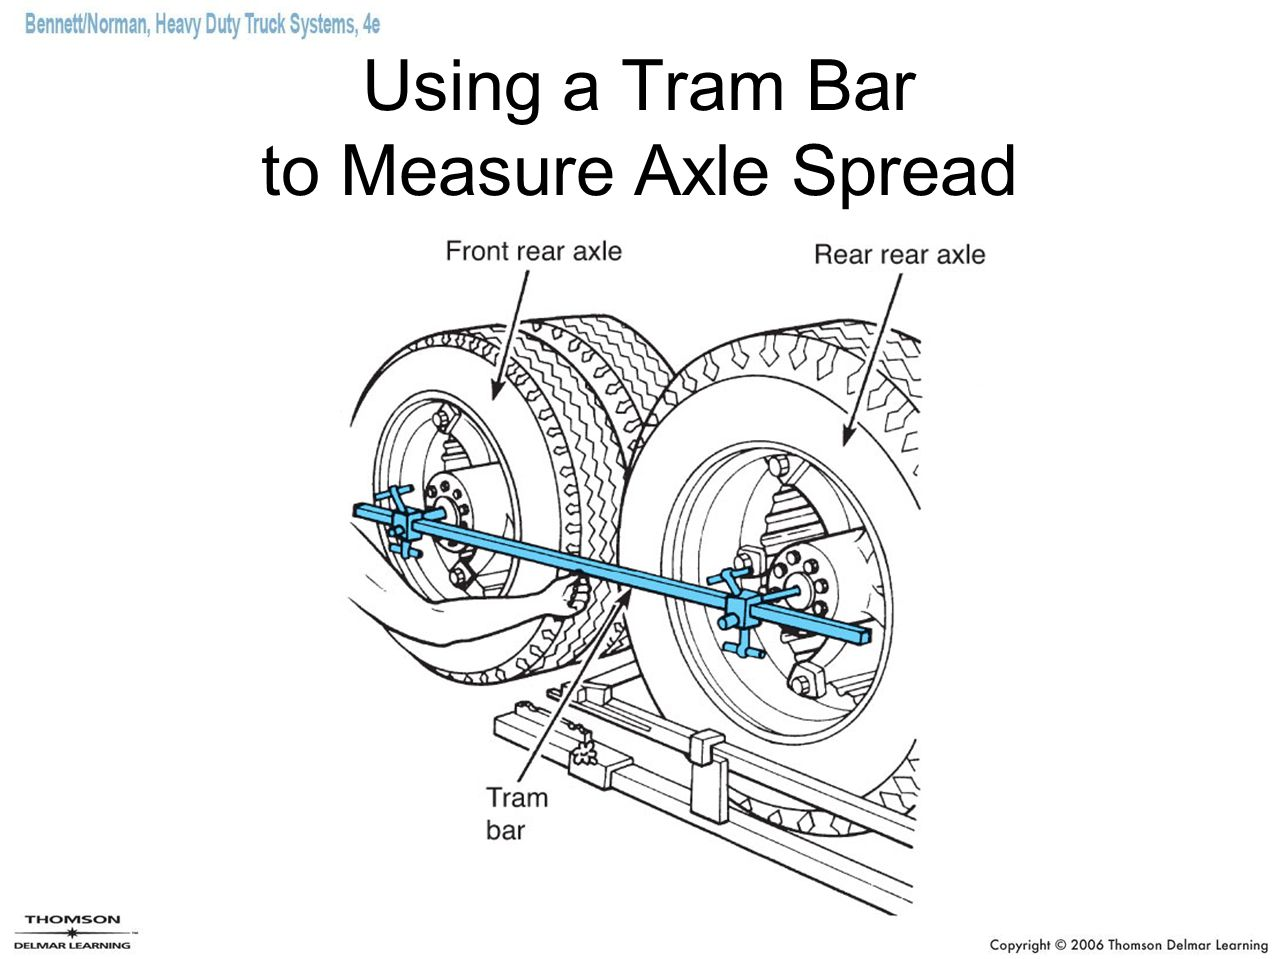 Using a Tram Bar to Measure Axle Spread